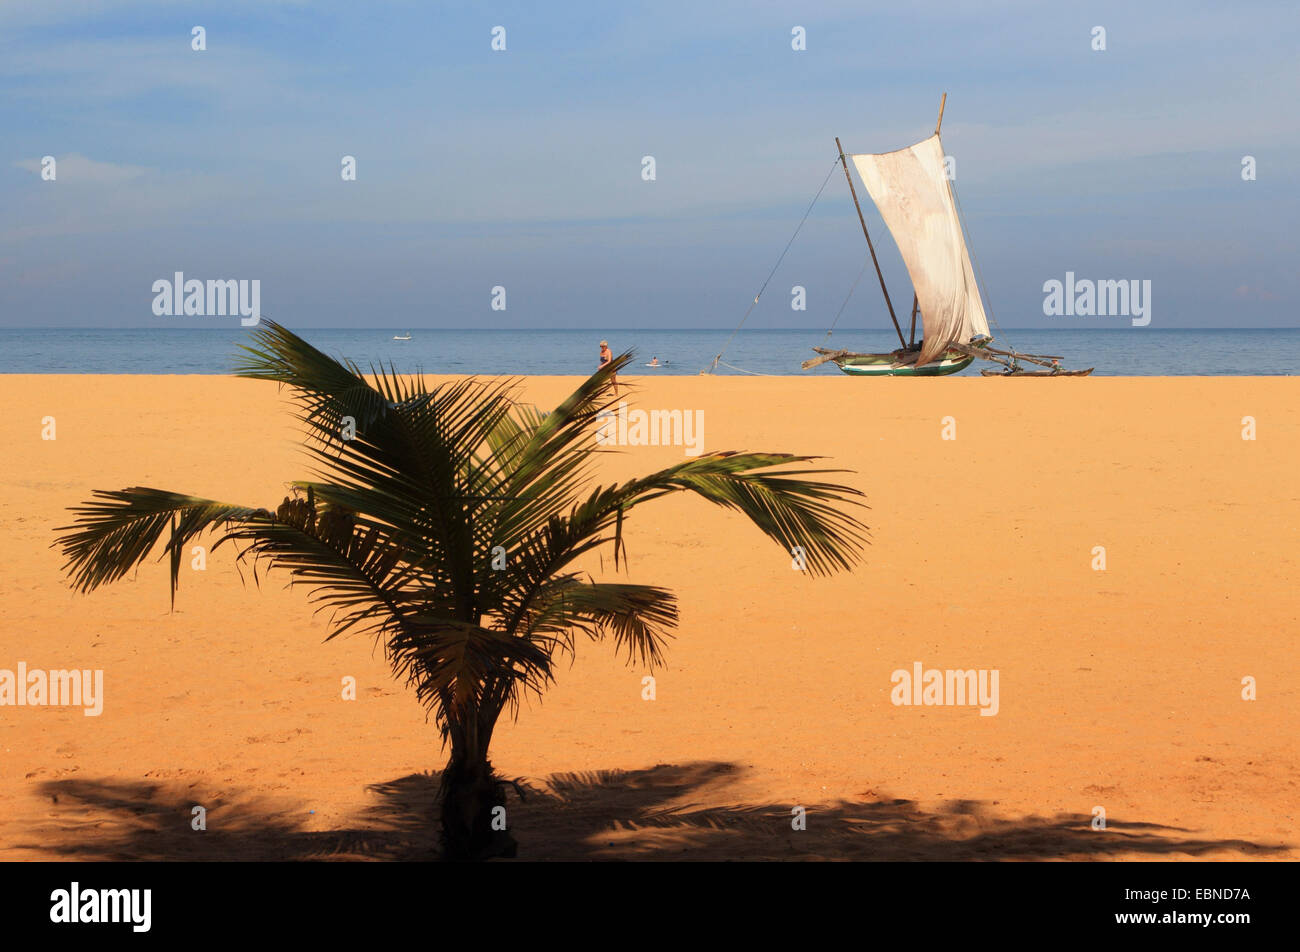 outrigger boat with set sail on the palm beach of Negombo, Sri Lanka - Stock Image